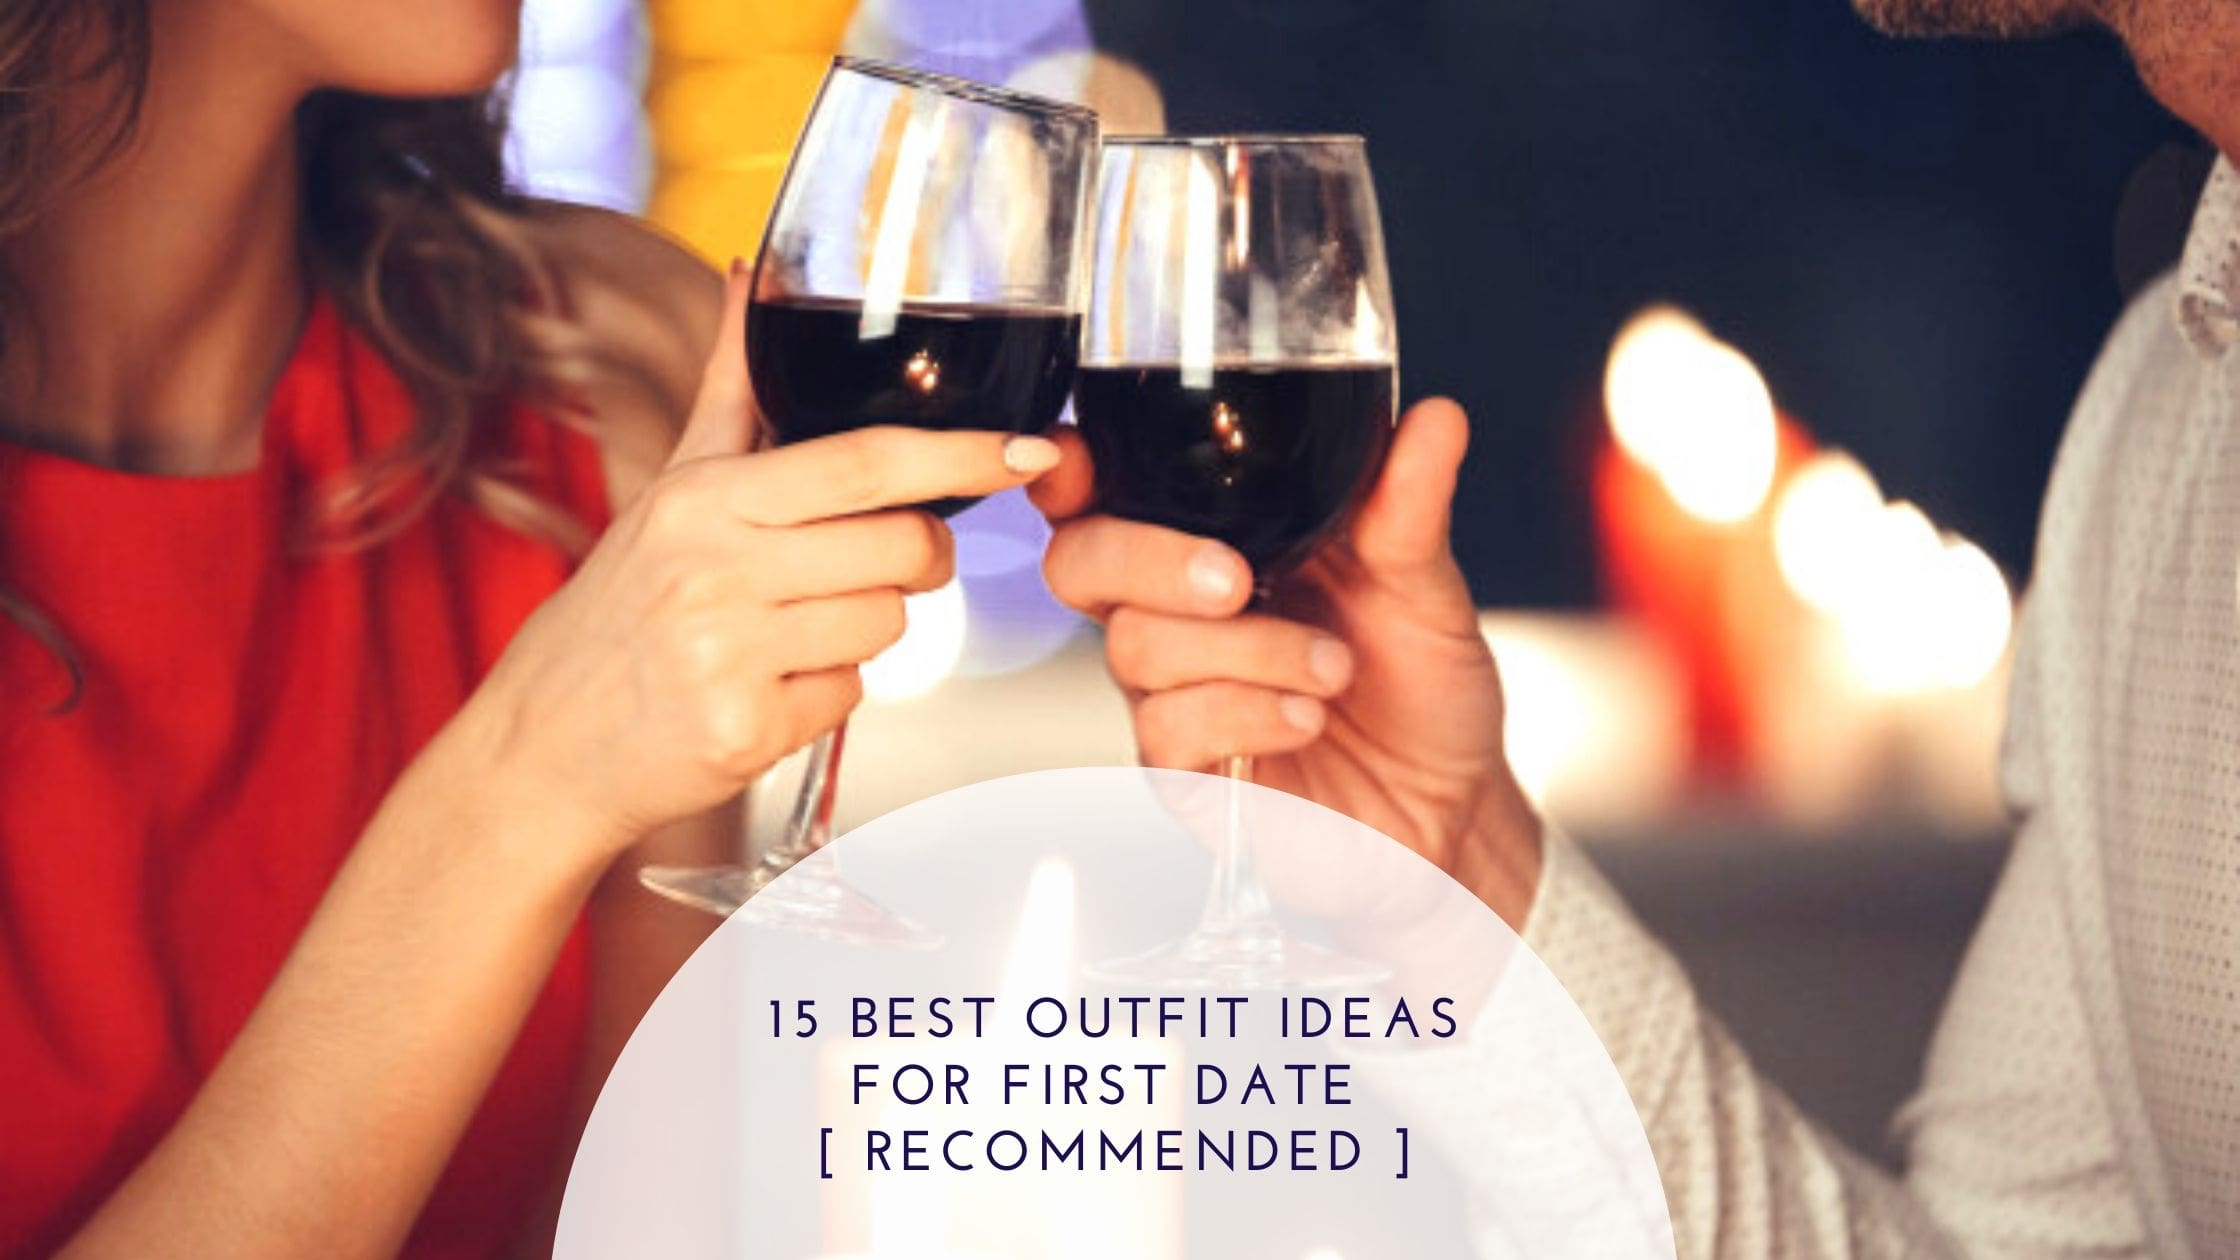 15 Best Outfit Ideas for First Date [ RECOMMENDED ]